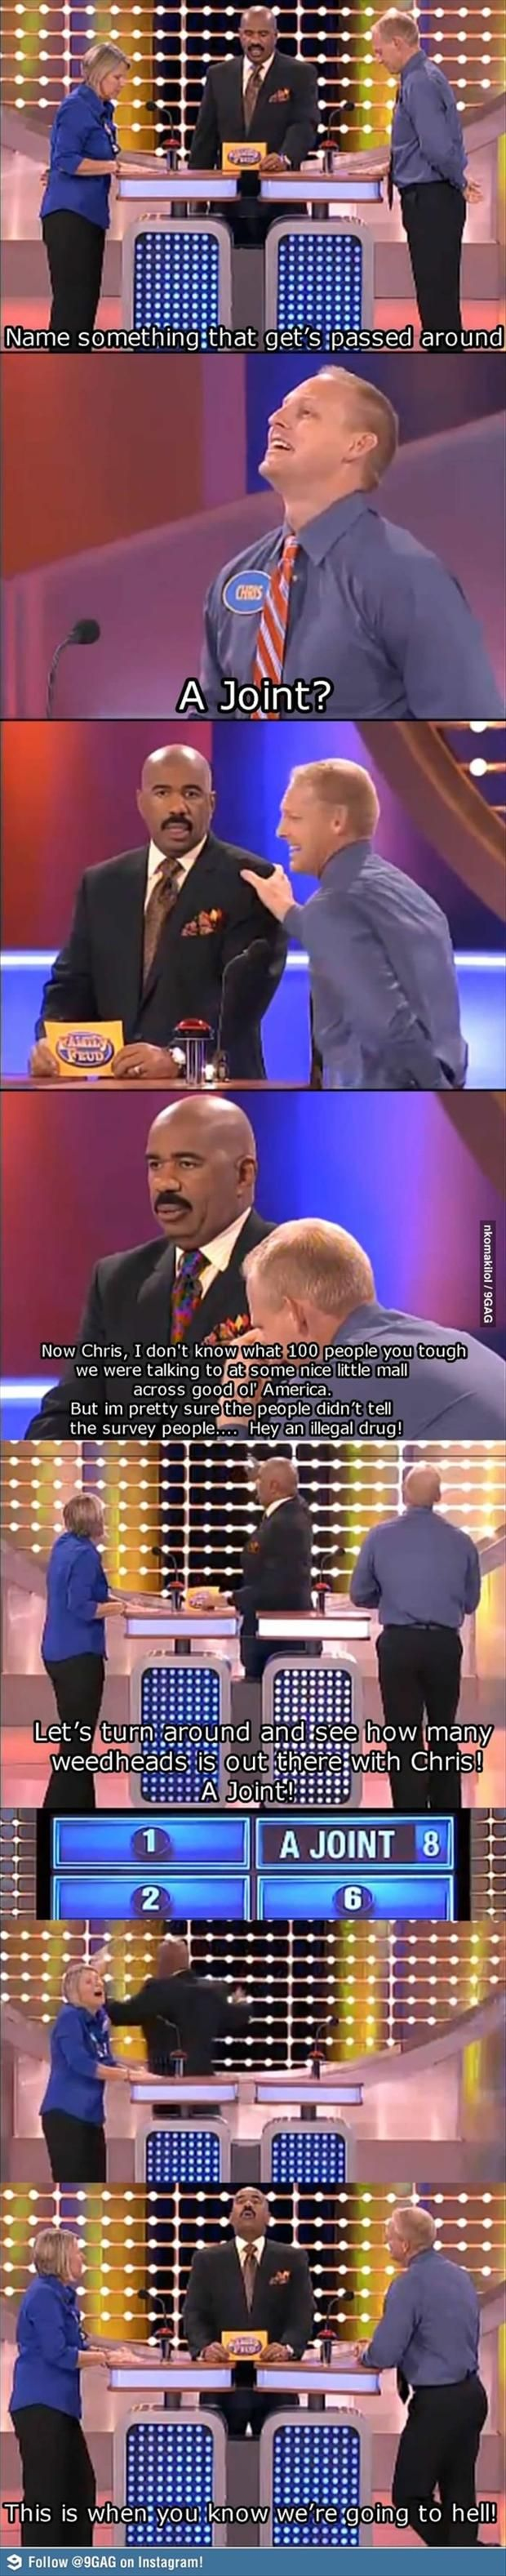 """Oh family feud.... How I love this show since Steve Harvey took over as host! His responses and expressions are priceless! :) (Please ignore the big, glaring typo that says """"tough"""" instead of """"thought."""" It bugged me, but the moment is too funny not to share."""